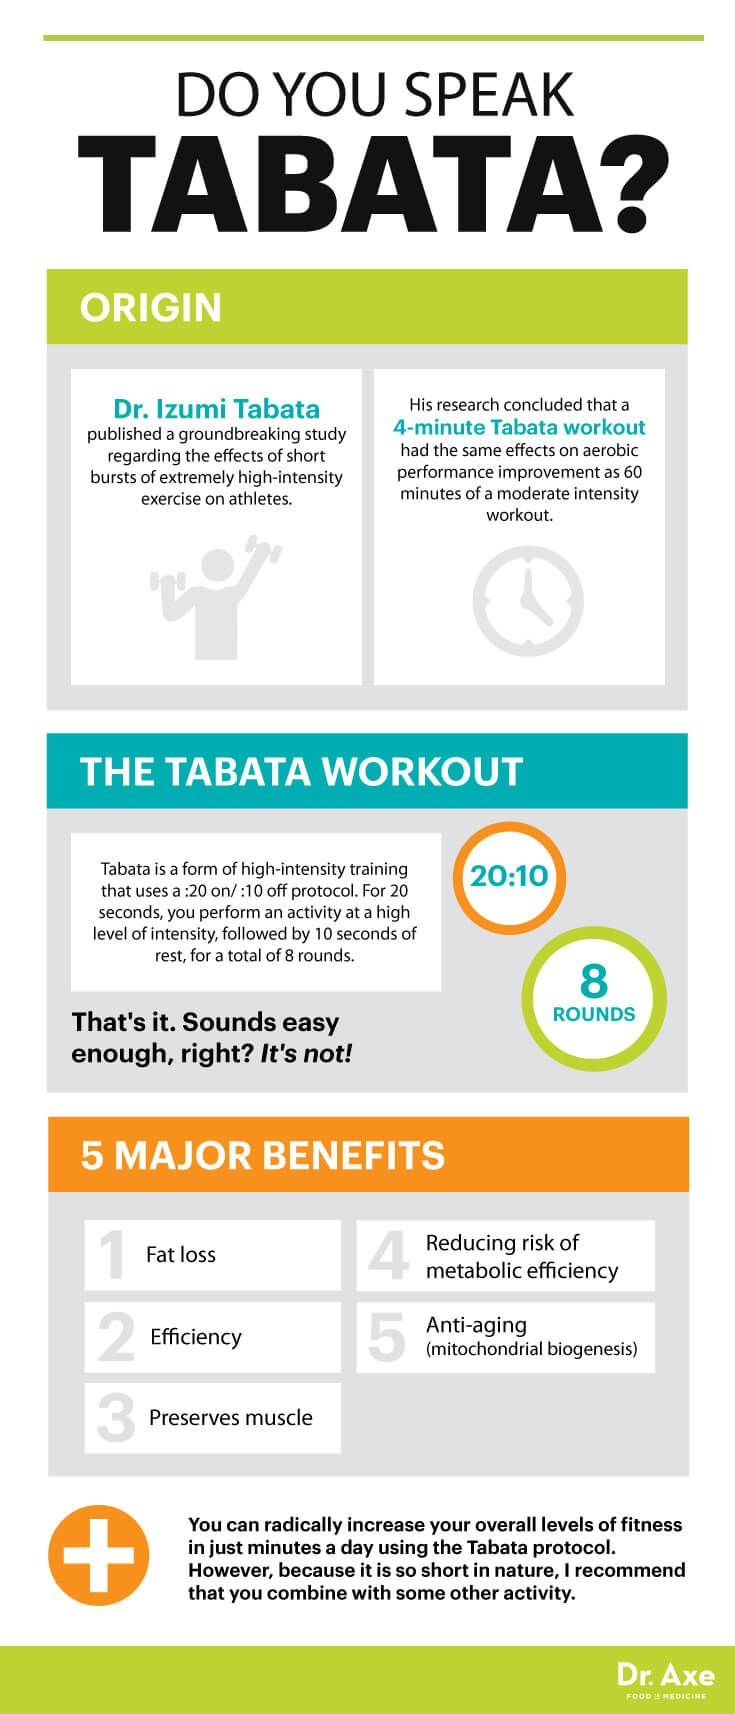 Tabata Workout: The Fastest Way to Fit & Lean? - Dr. Axe